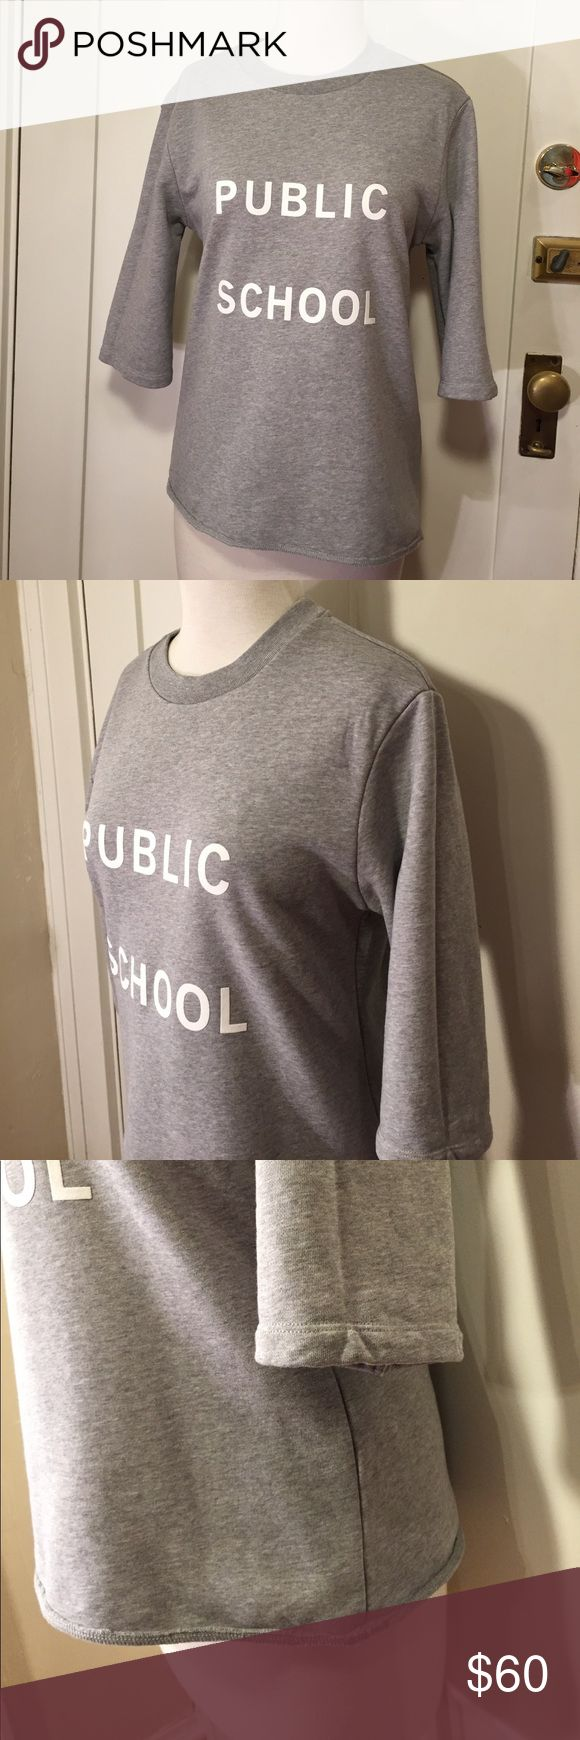 Public School New York gray logo sweatshirt This is a comfortable gray sweatshirt from Public School New York, light gray with front graphic, cropped sleeves. Bust 38 inches, shoulder width 17 inches, full length 24 inches. See pictures for details. Good condition. Be sure and check out other items in closet and bundle to receive discounts. Public School Tops Sweatshirts & Hoodies